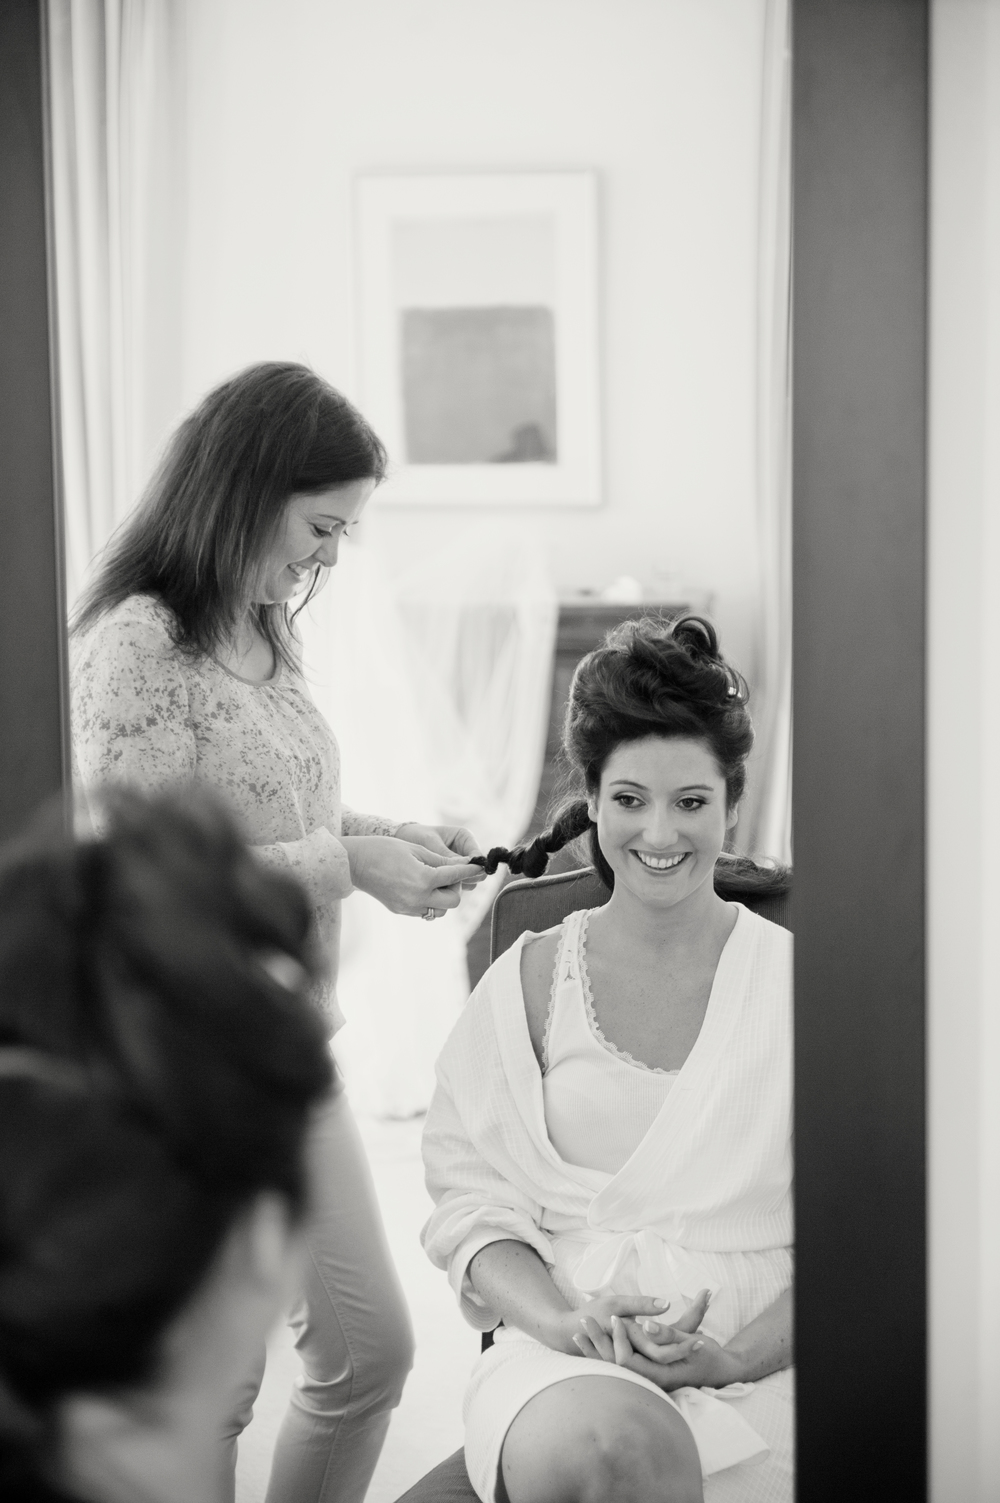 Hair by Marie Hickey - Photography:   Weddings by KARA   © - Wedding Location: Kilshane House, Tipperary, Ireland